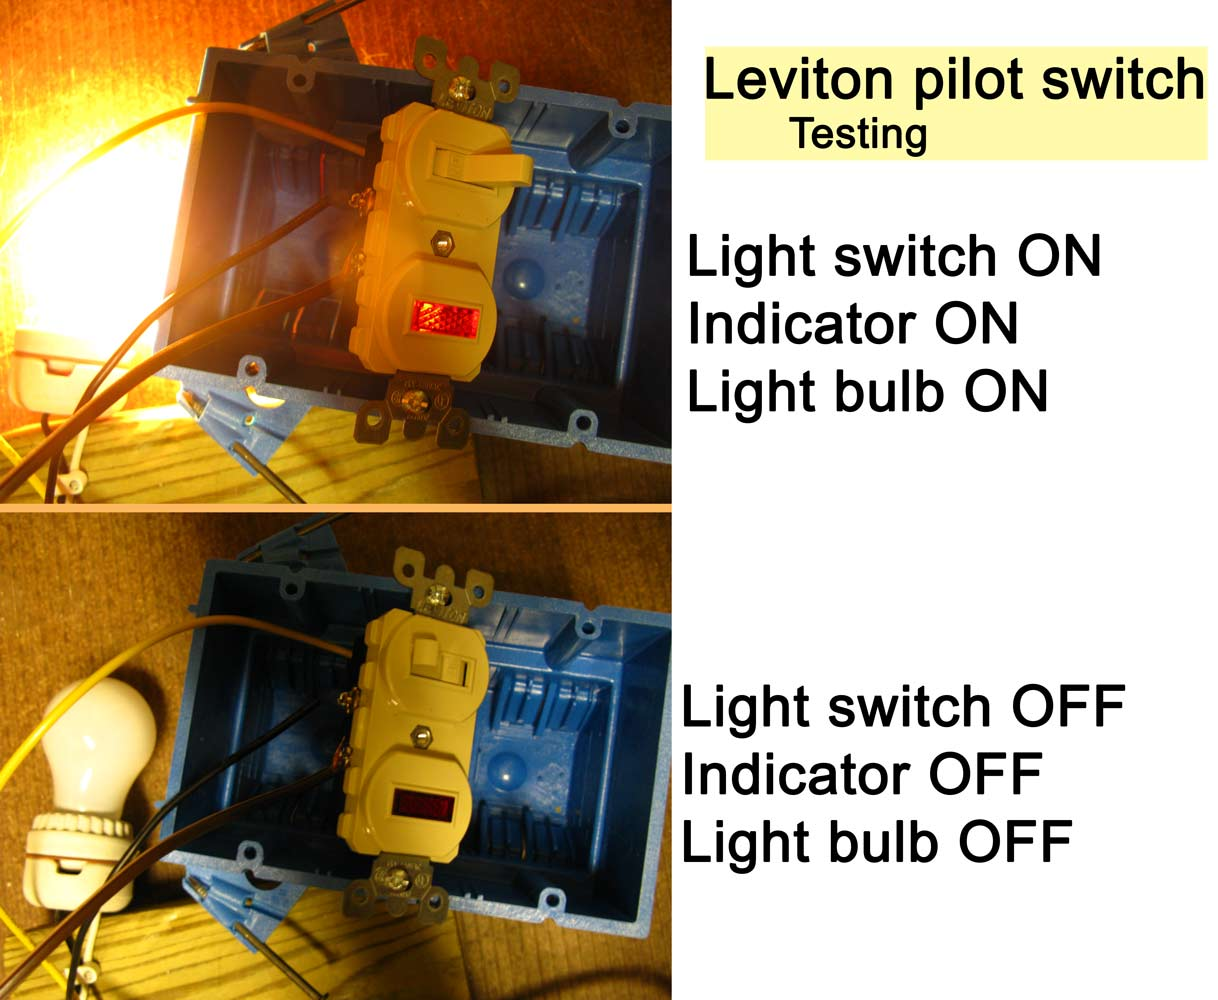 Leviton pilot switch testing IMG_1033 1000 how to wire cooper 277 pilot light switch 3 Three -Way Switch Diagram at crackthecode.co